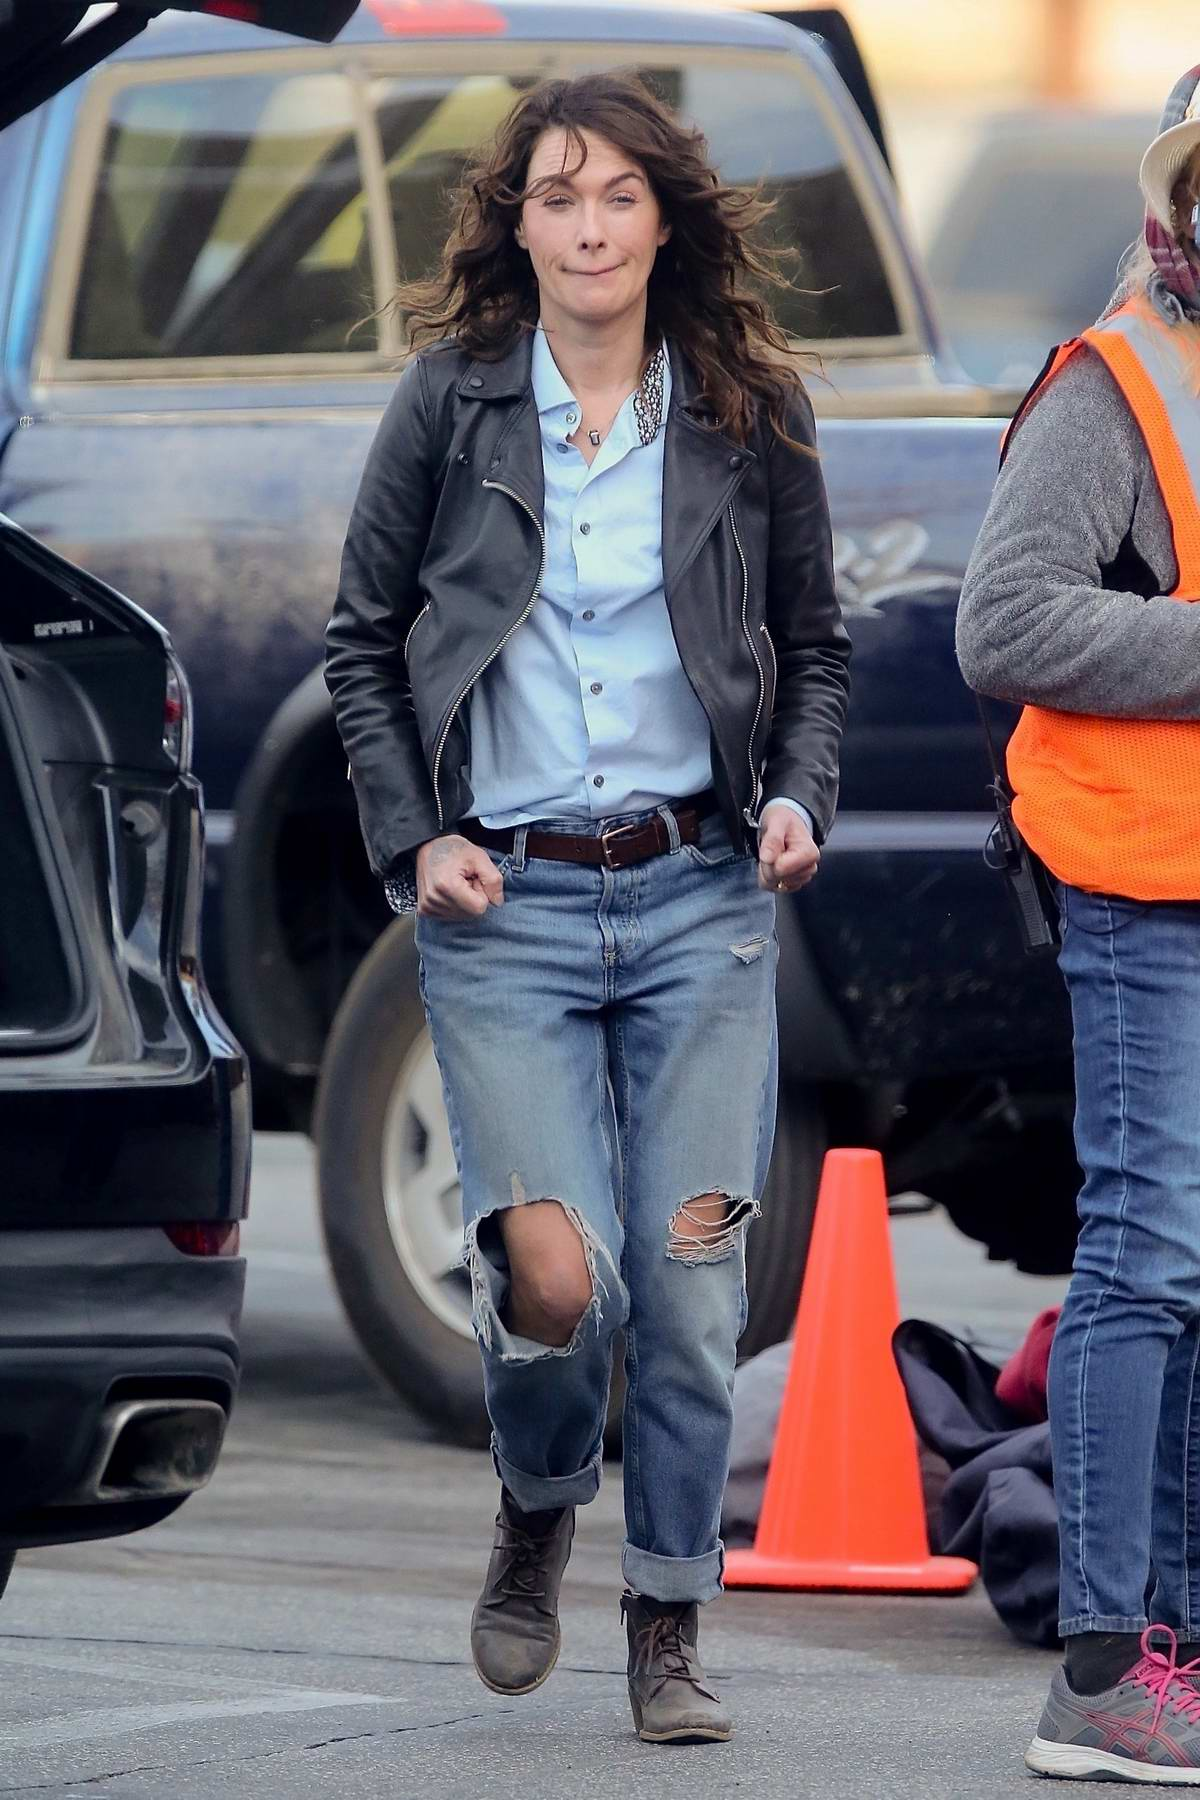 Lena Headey appears to have a tattoo on her right hand as she films scenes for 'Gypsy Moon' in Los Angeles